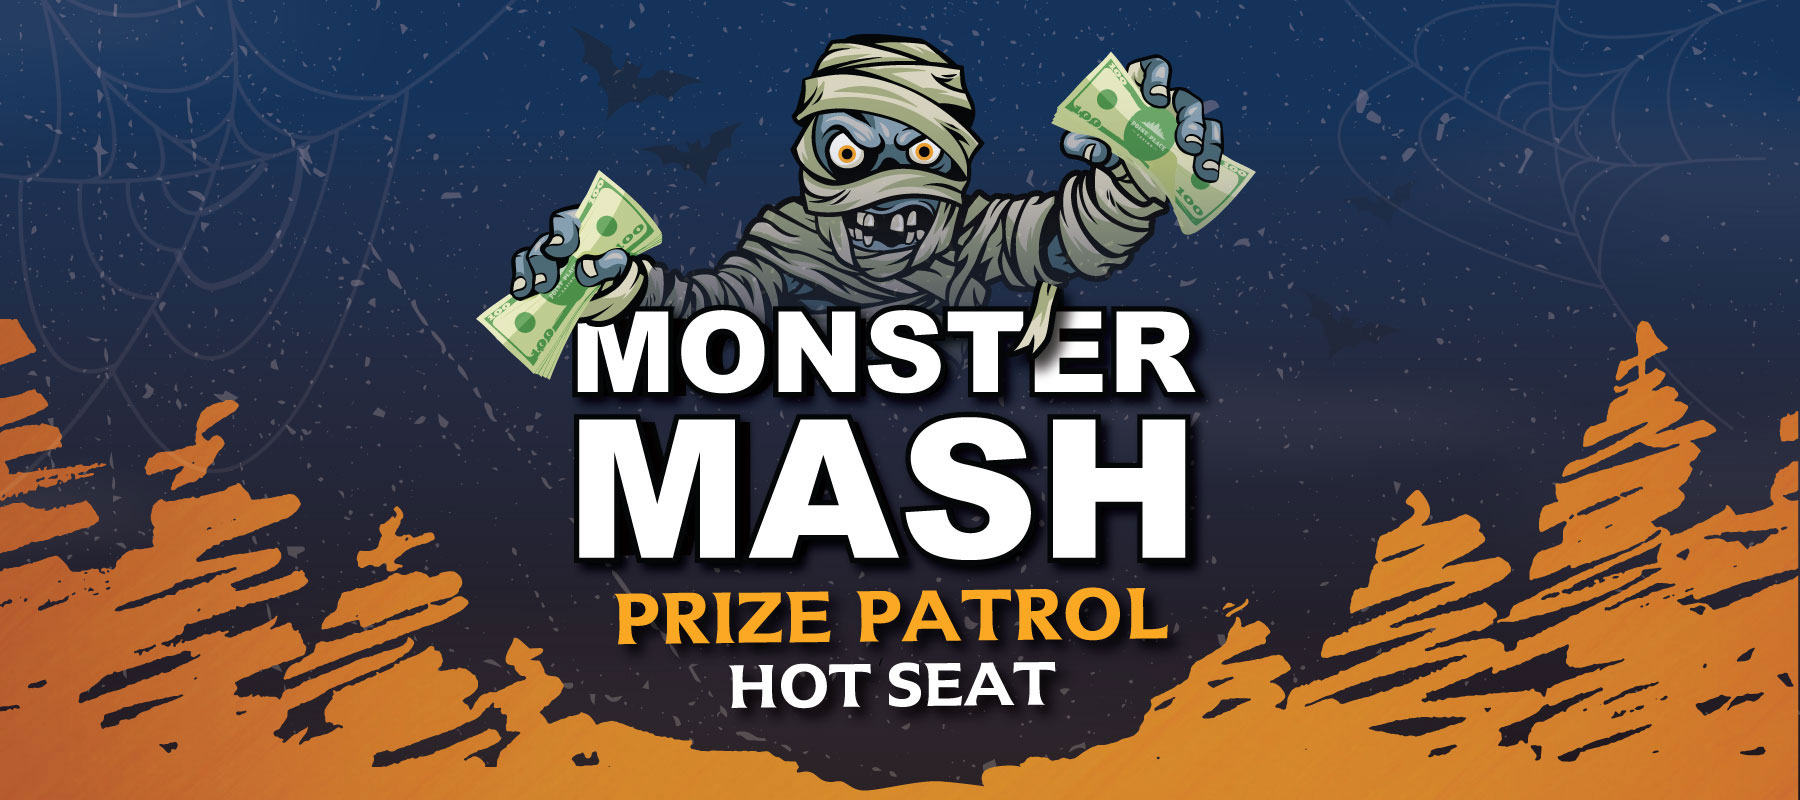 Monster Mash Prize Patrol Hot Seat